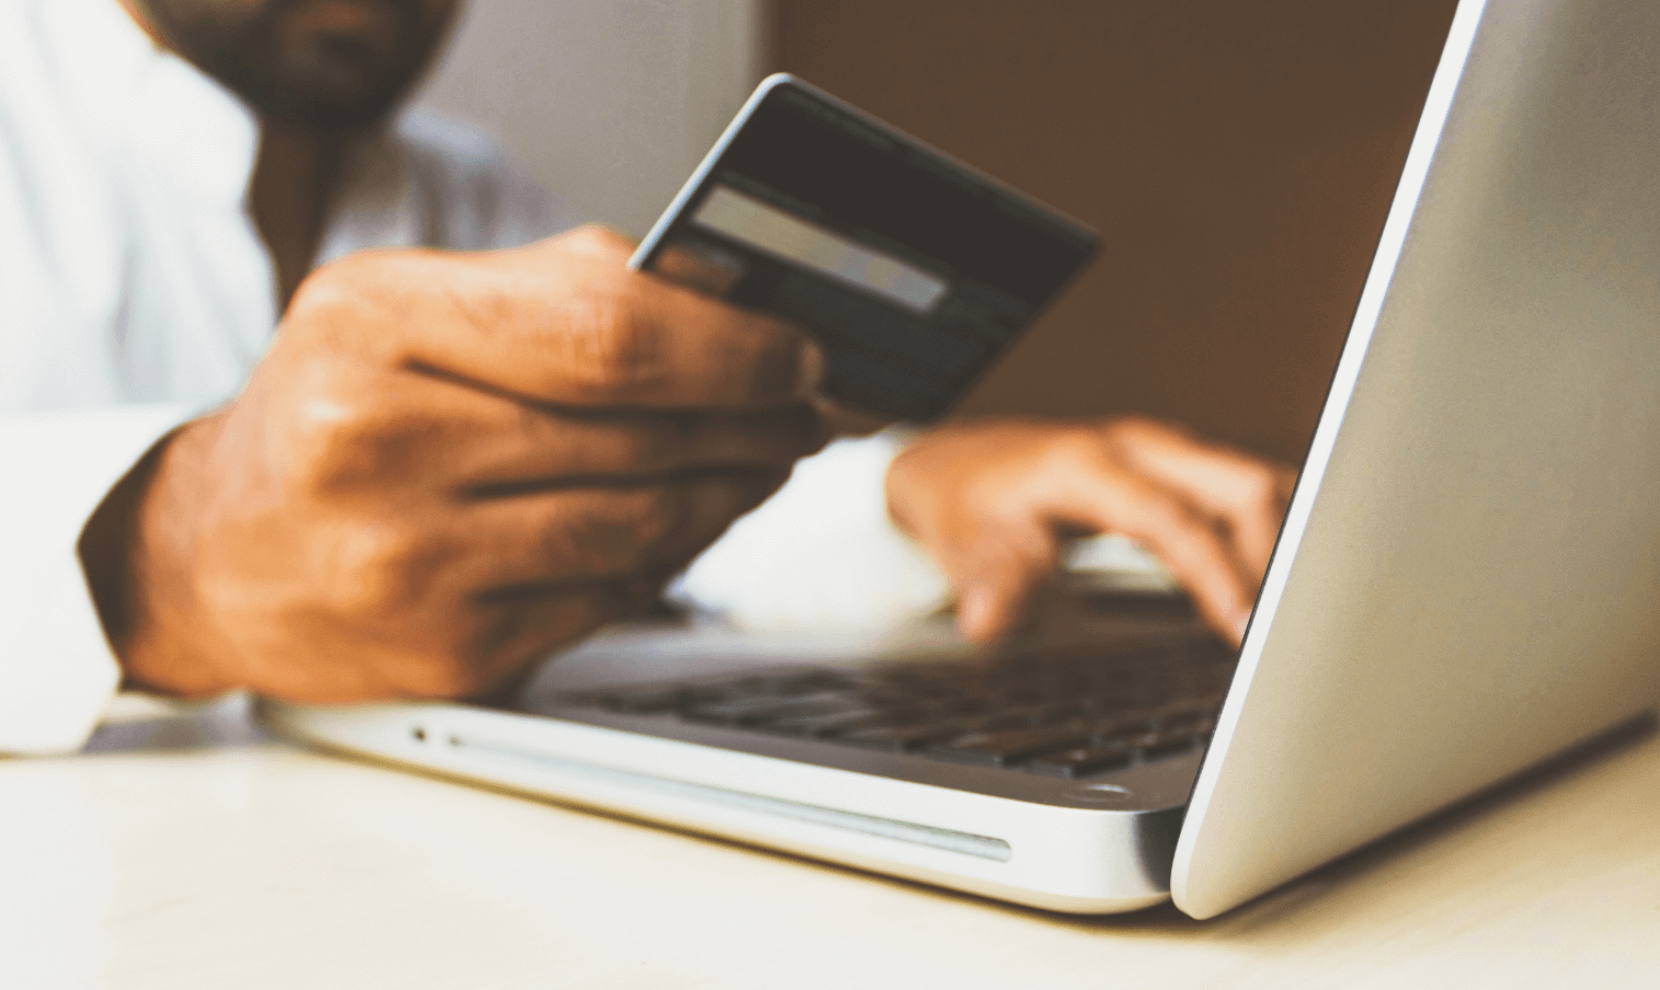 e-commerce-will-contribute-1-2-trillion-pesos-to-the-philippine-economy-by-2022